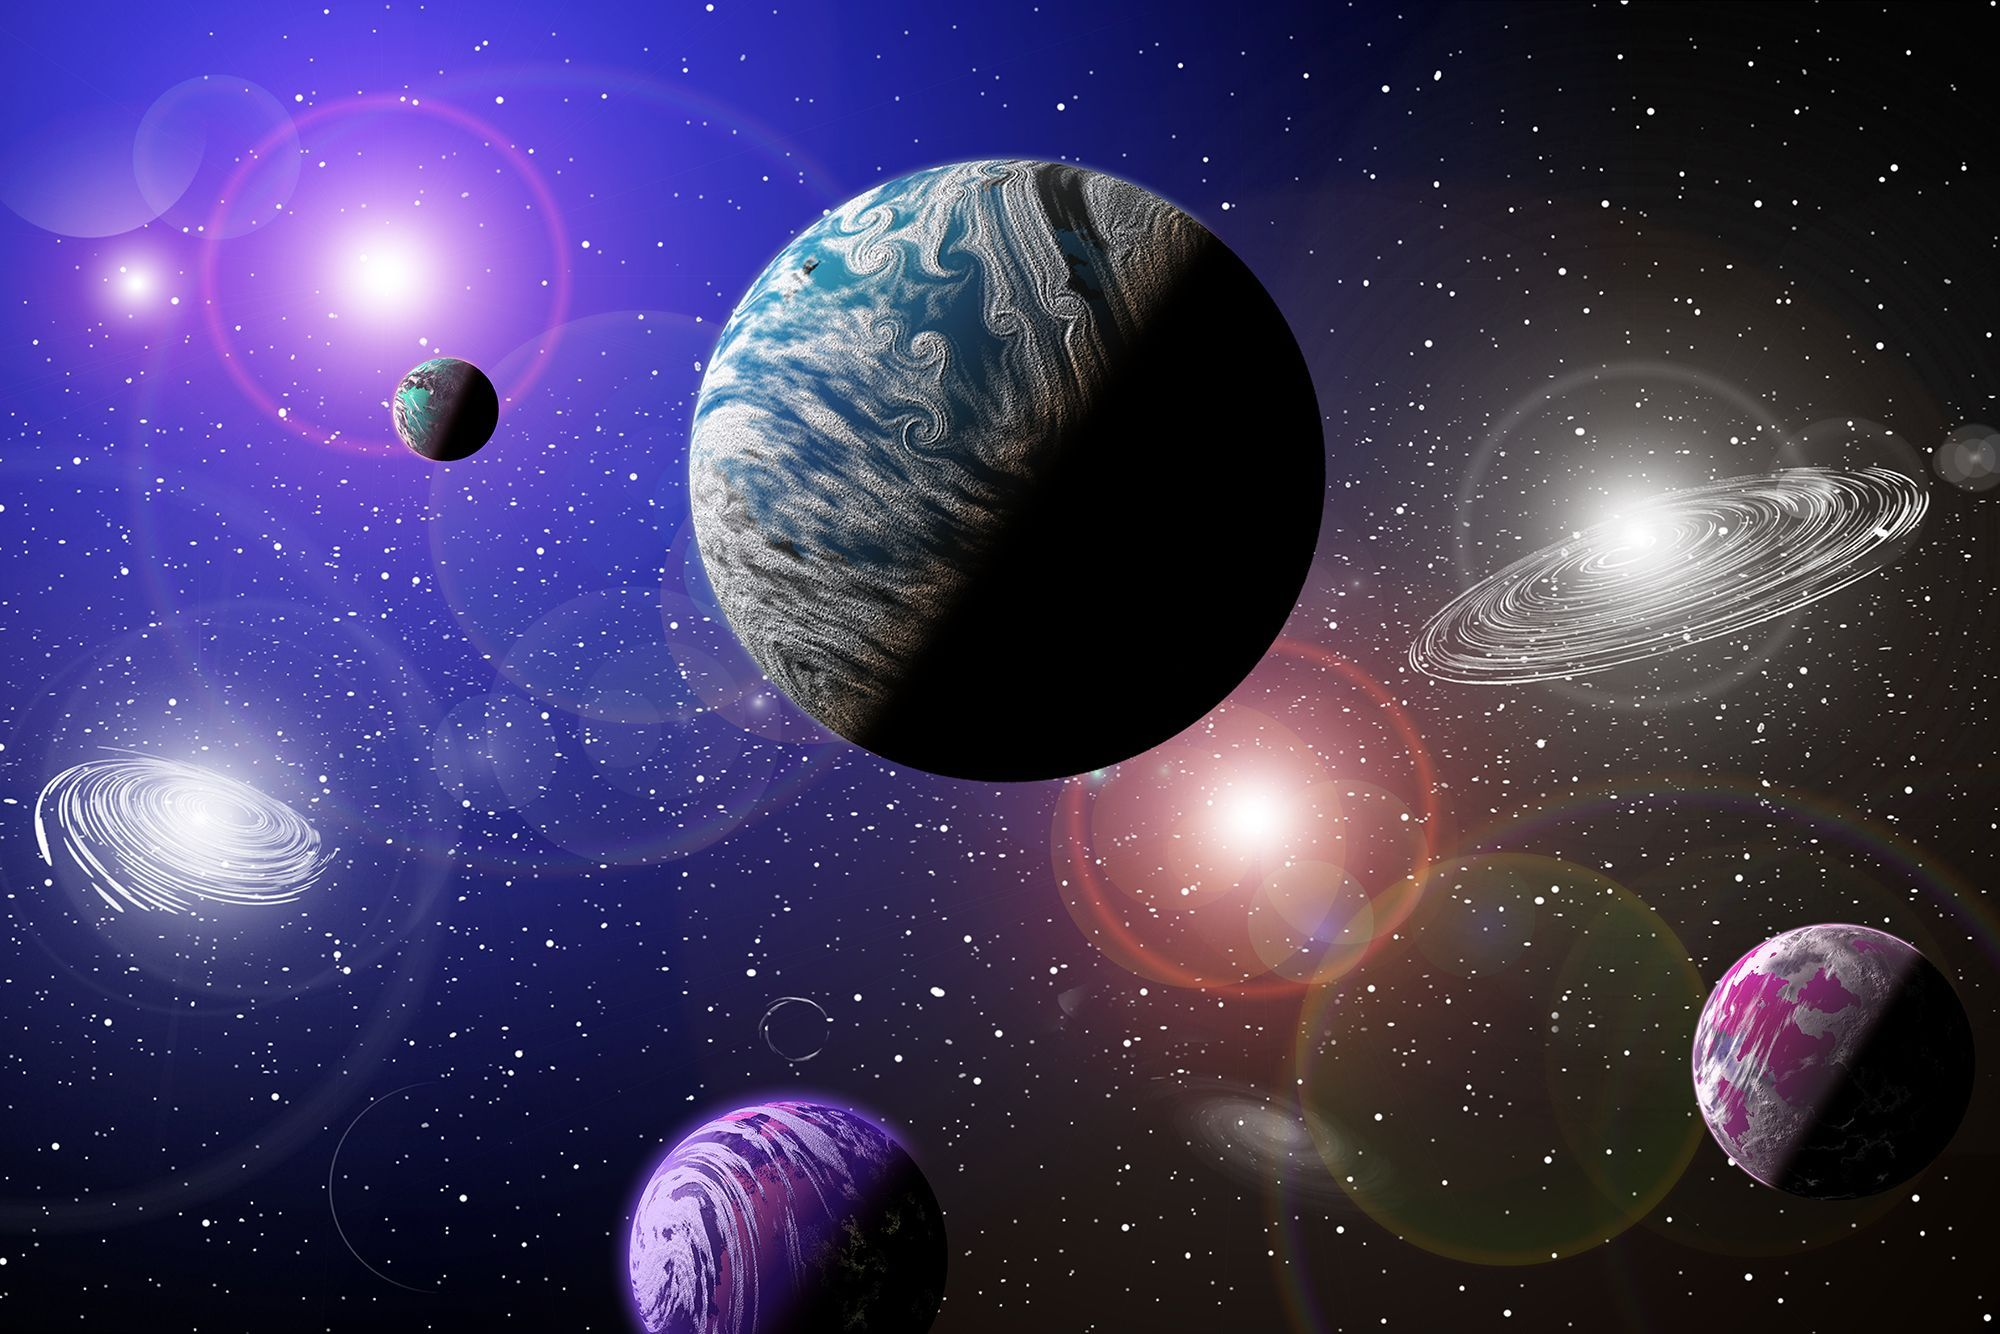 Peel and stick photo wall mural galaxy planets space photo wallpaper 125cm x 84cm wallpapers - Galaxy and planets ...